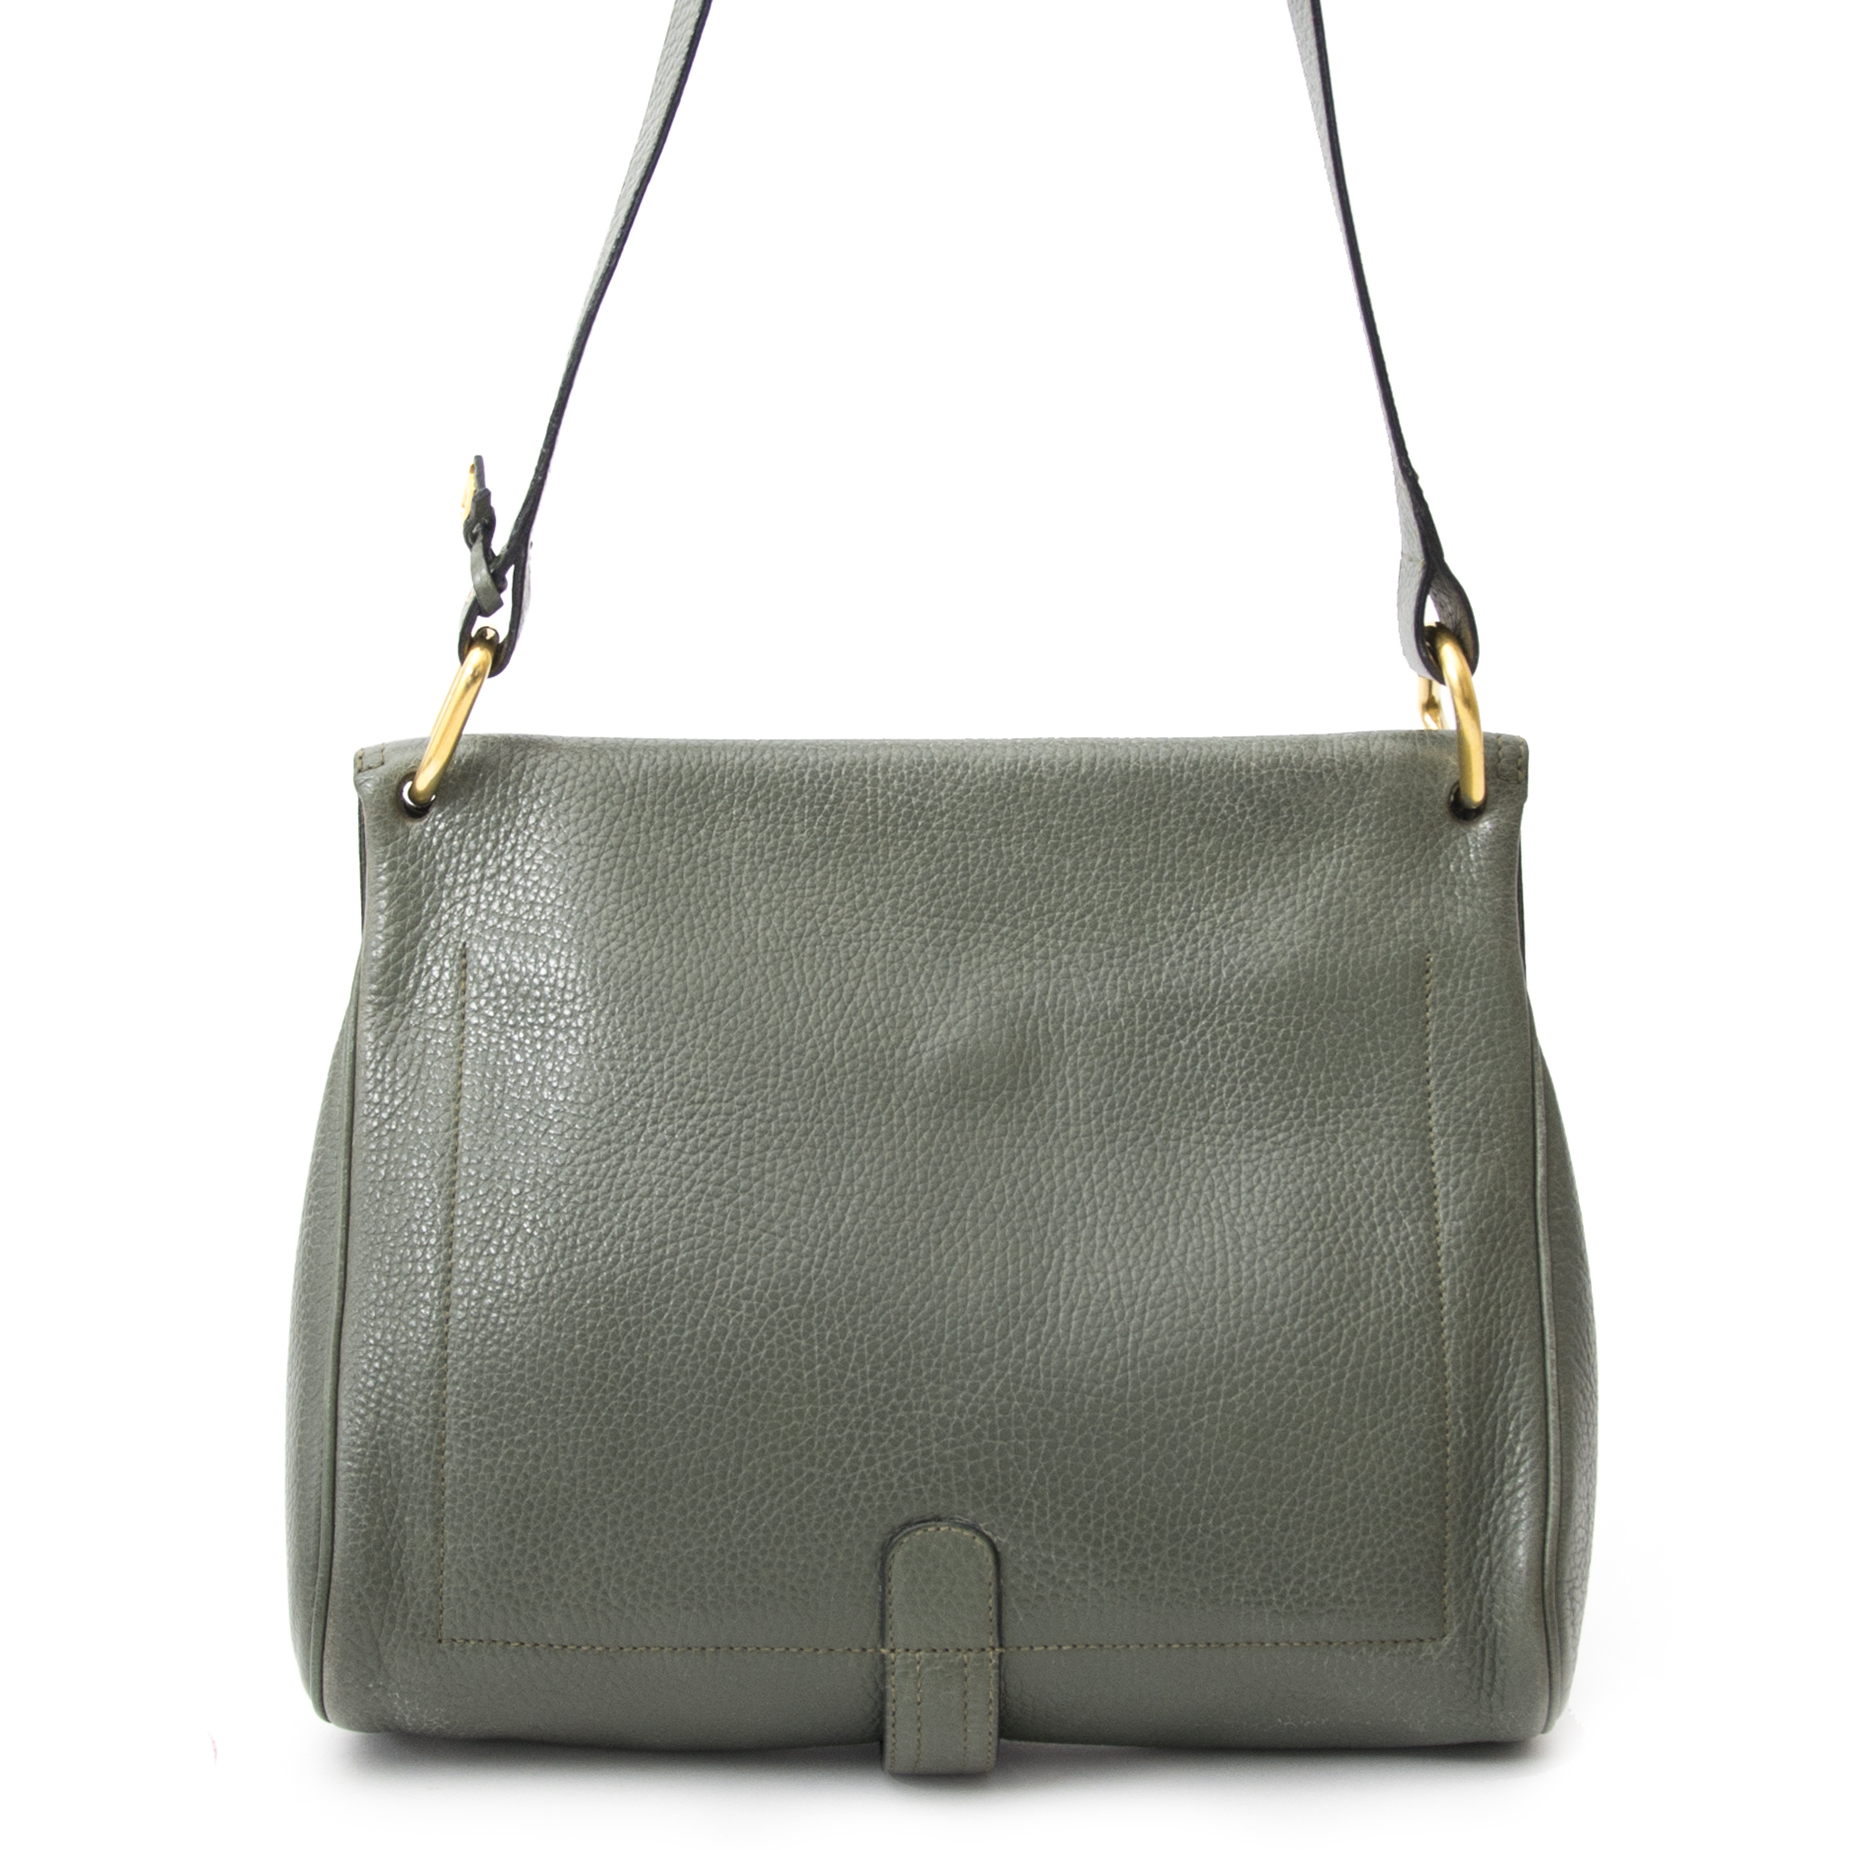 Are you looking for an authentic Delvaux Khaki Green Shoulder Bag?